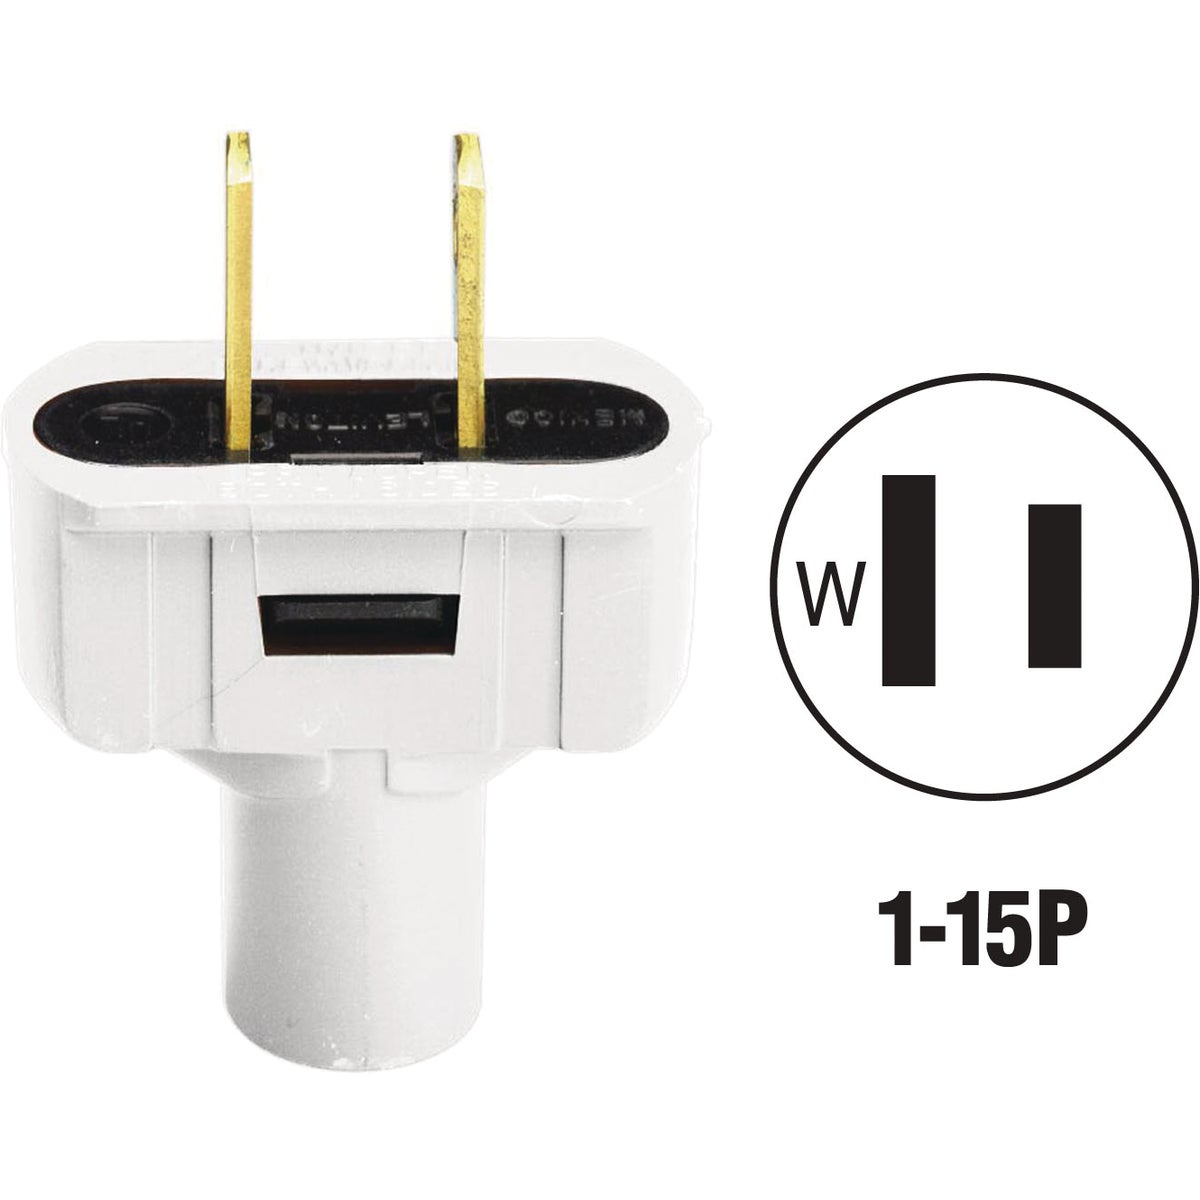 WHT CORD PLUG - 87648643W by Leviton Mfg Co